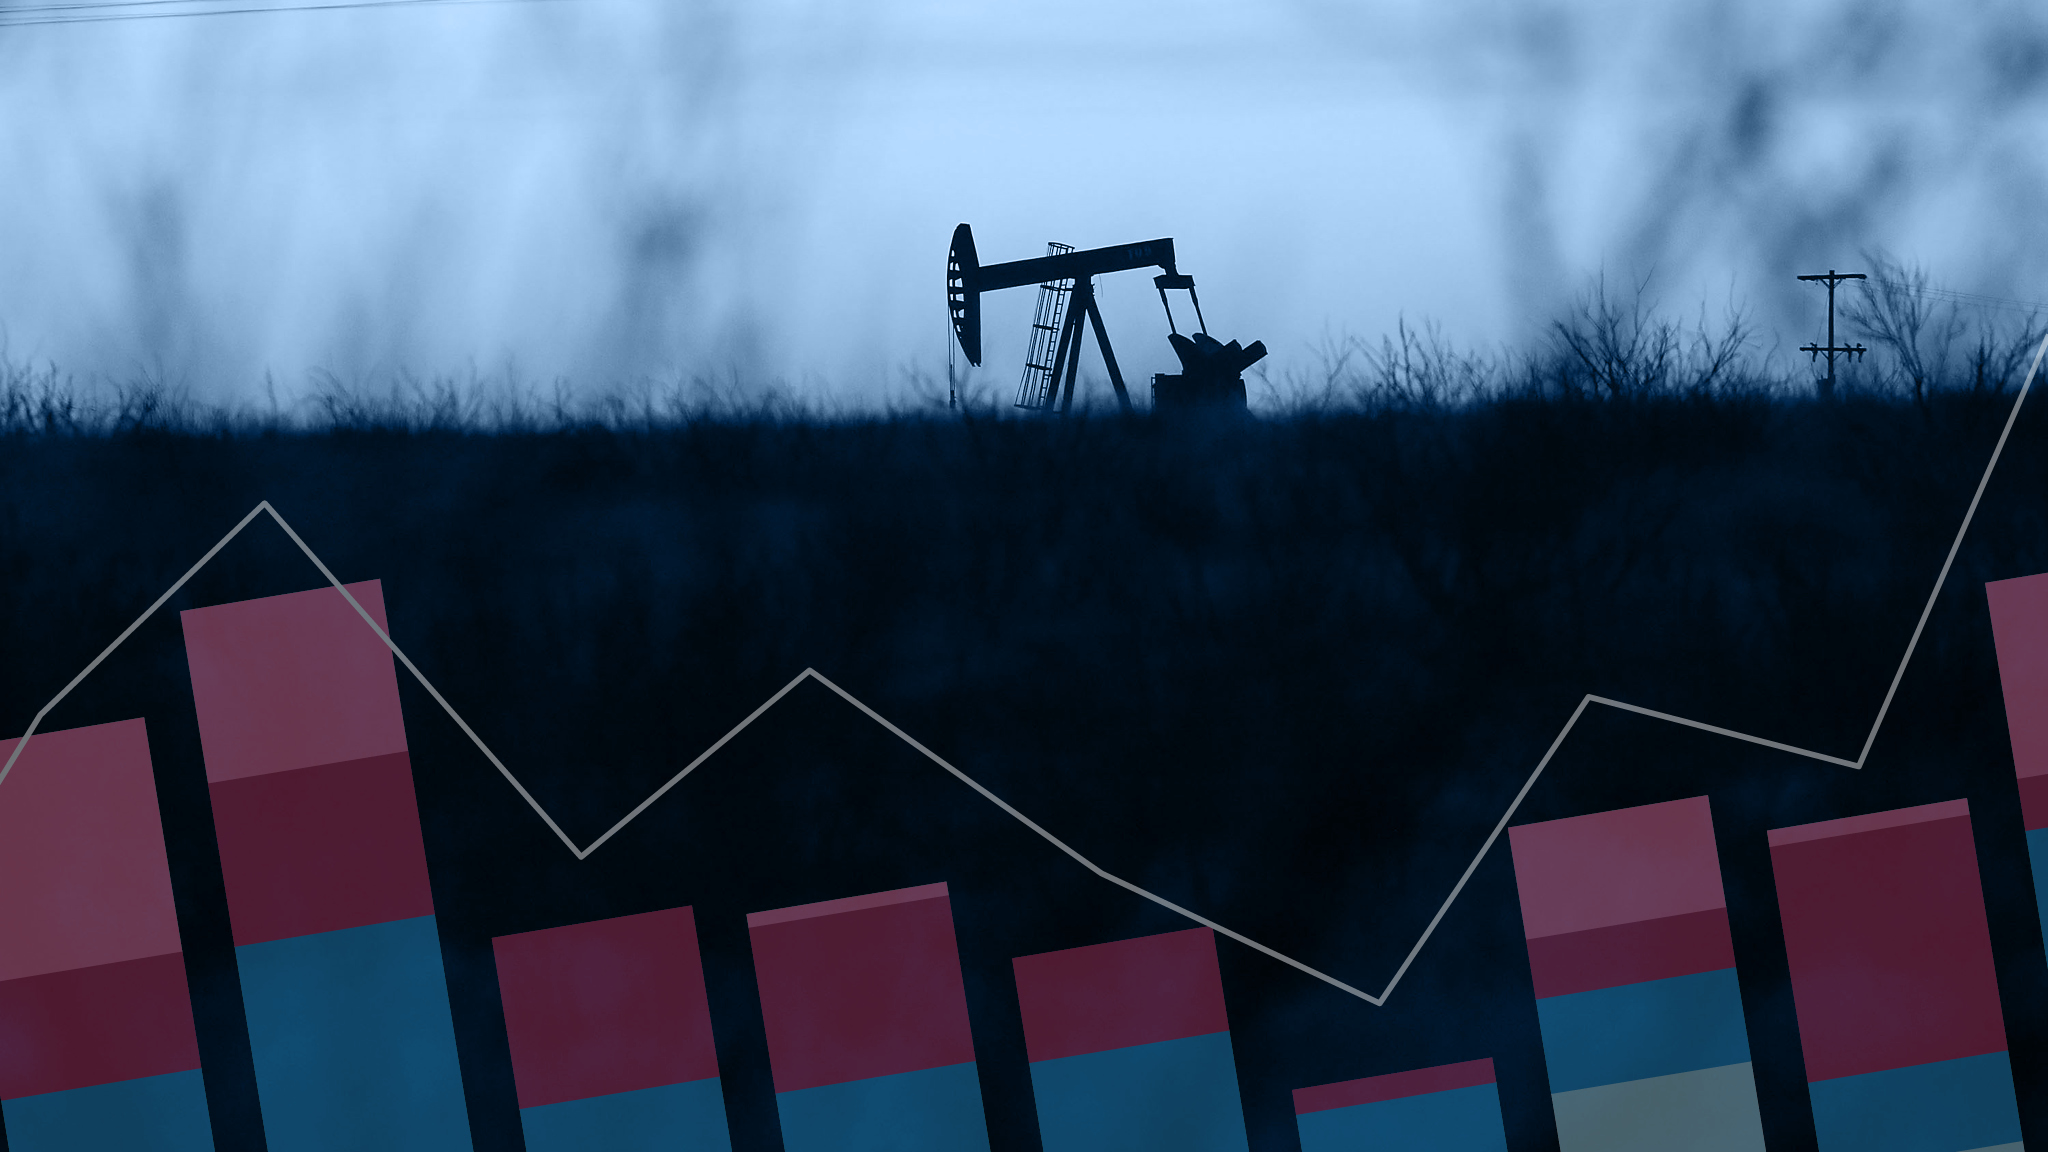 Oil price trades near highest level since 2015